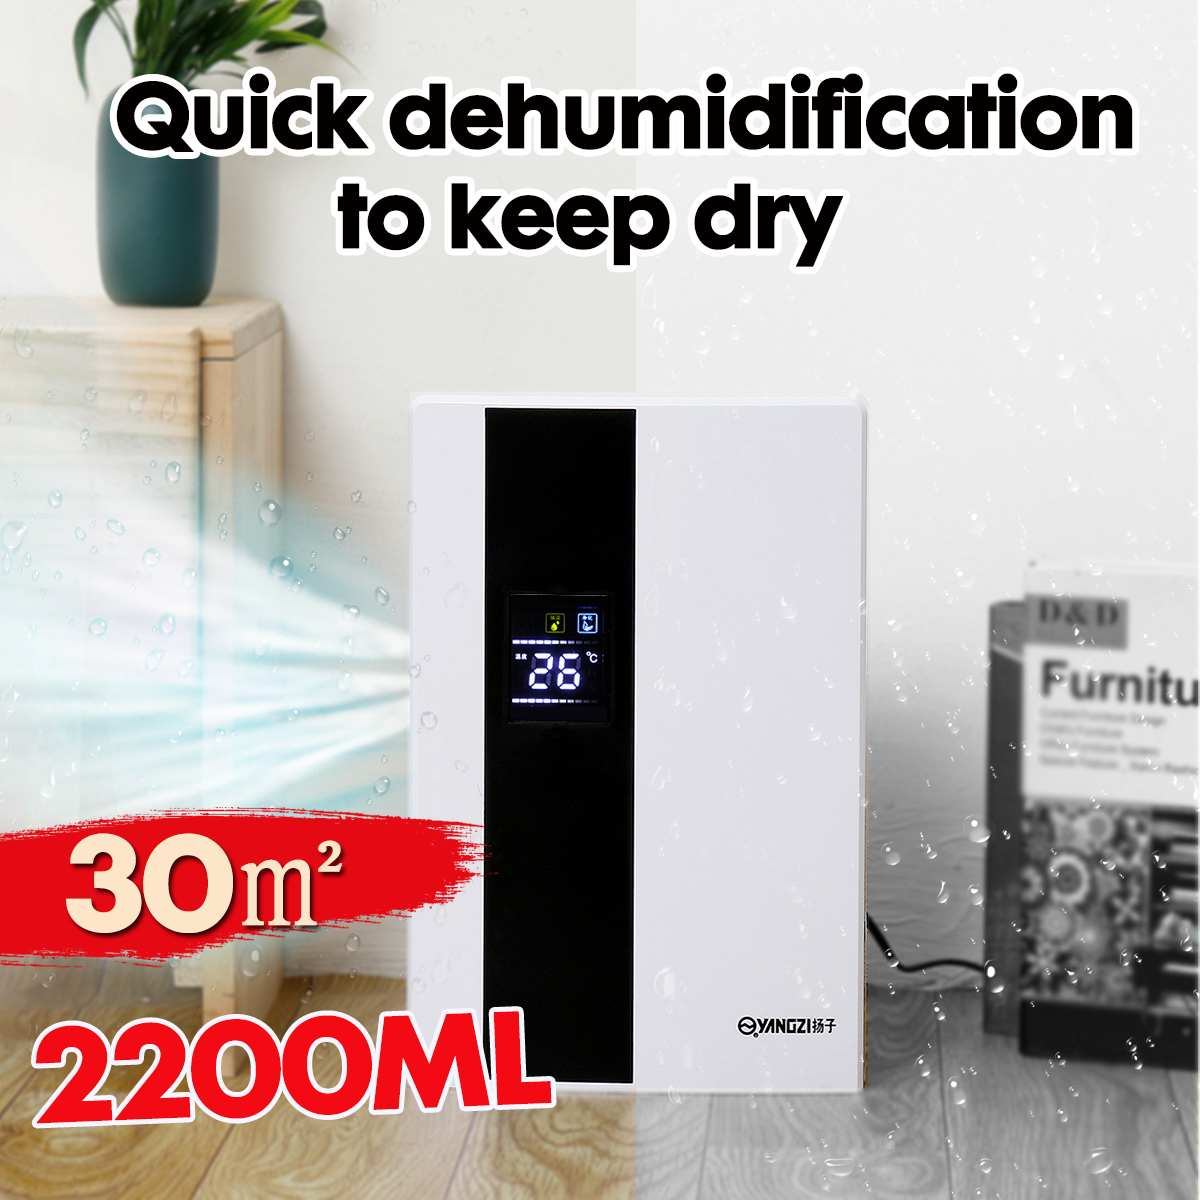 2.2L Smart Home Dehumidifier Large Screen LCD Display Air Dryer Automatic Bucket Full Shut-Off Purifier With Remote Control